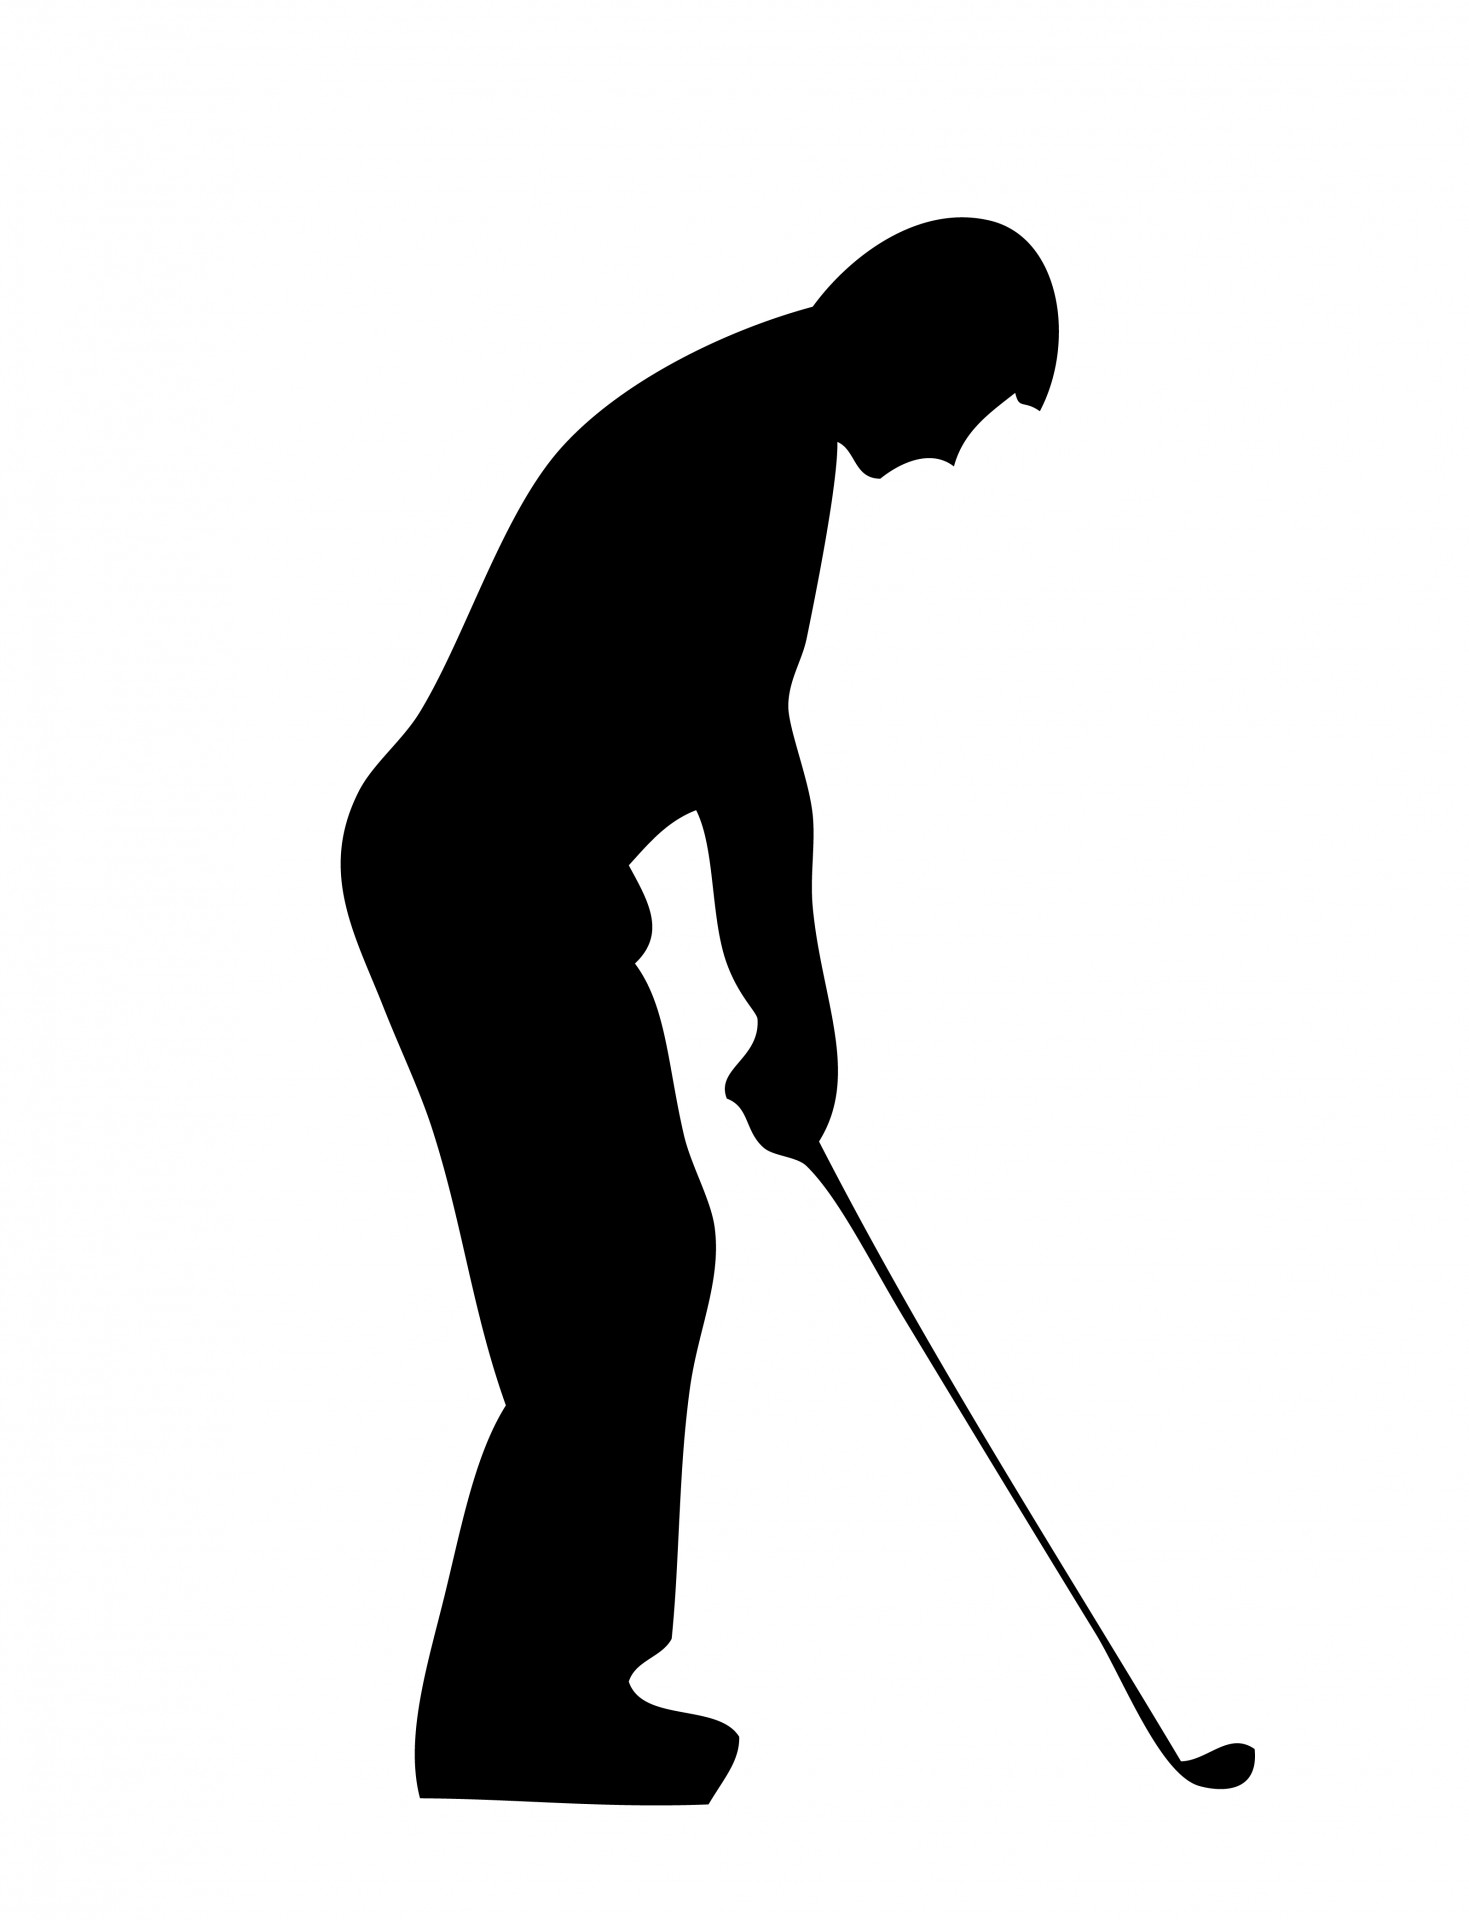 Golf Course clipart golfing picture #3